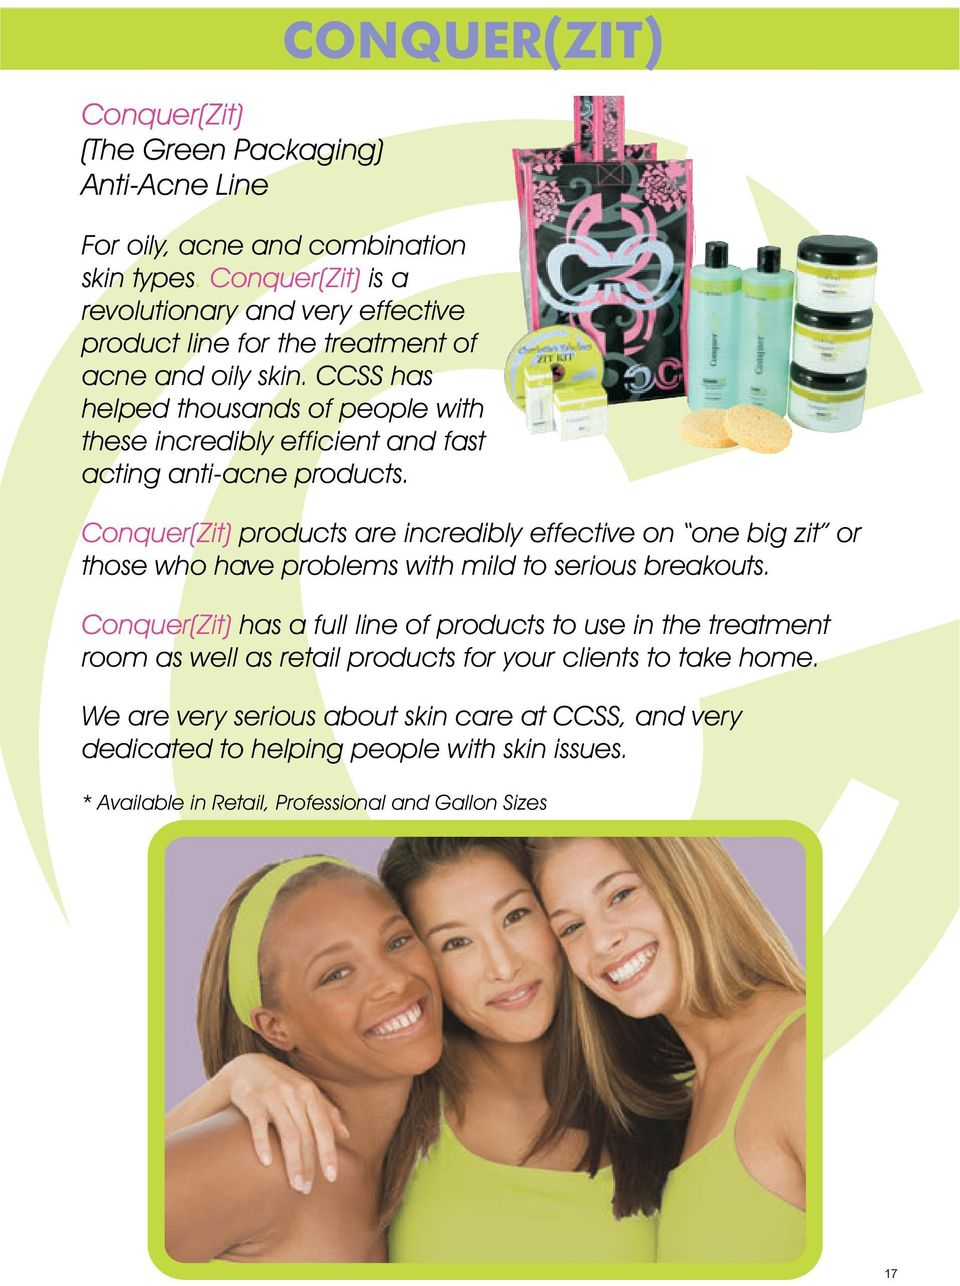 CCSS has helped thousands of people with these incredibly efficient and fast acting anti-acne products.